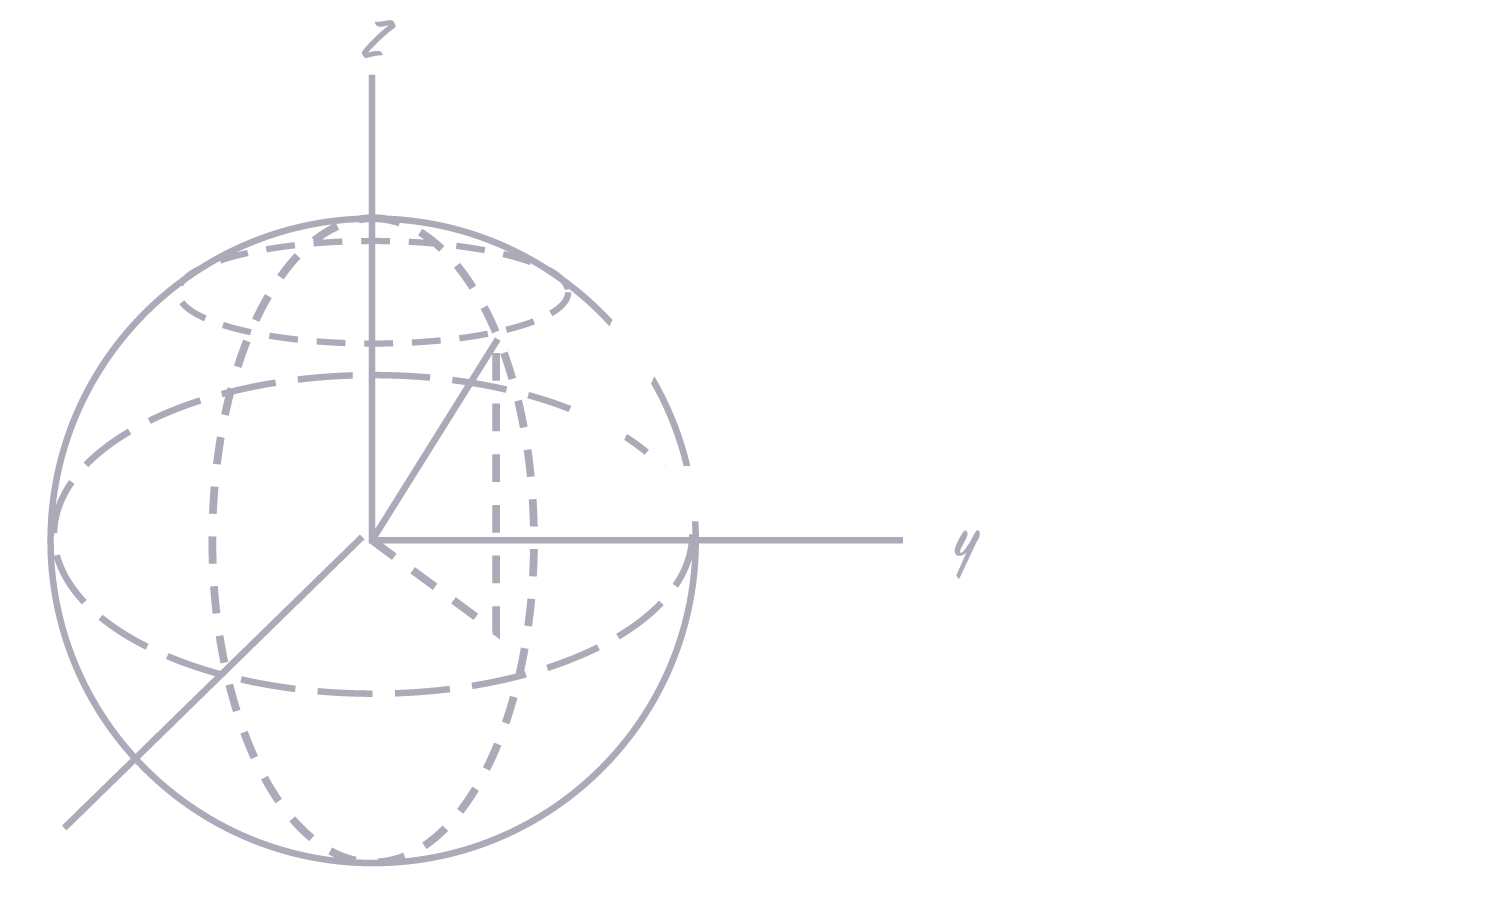 Zenith Consulting Engineers